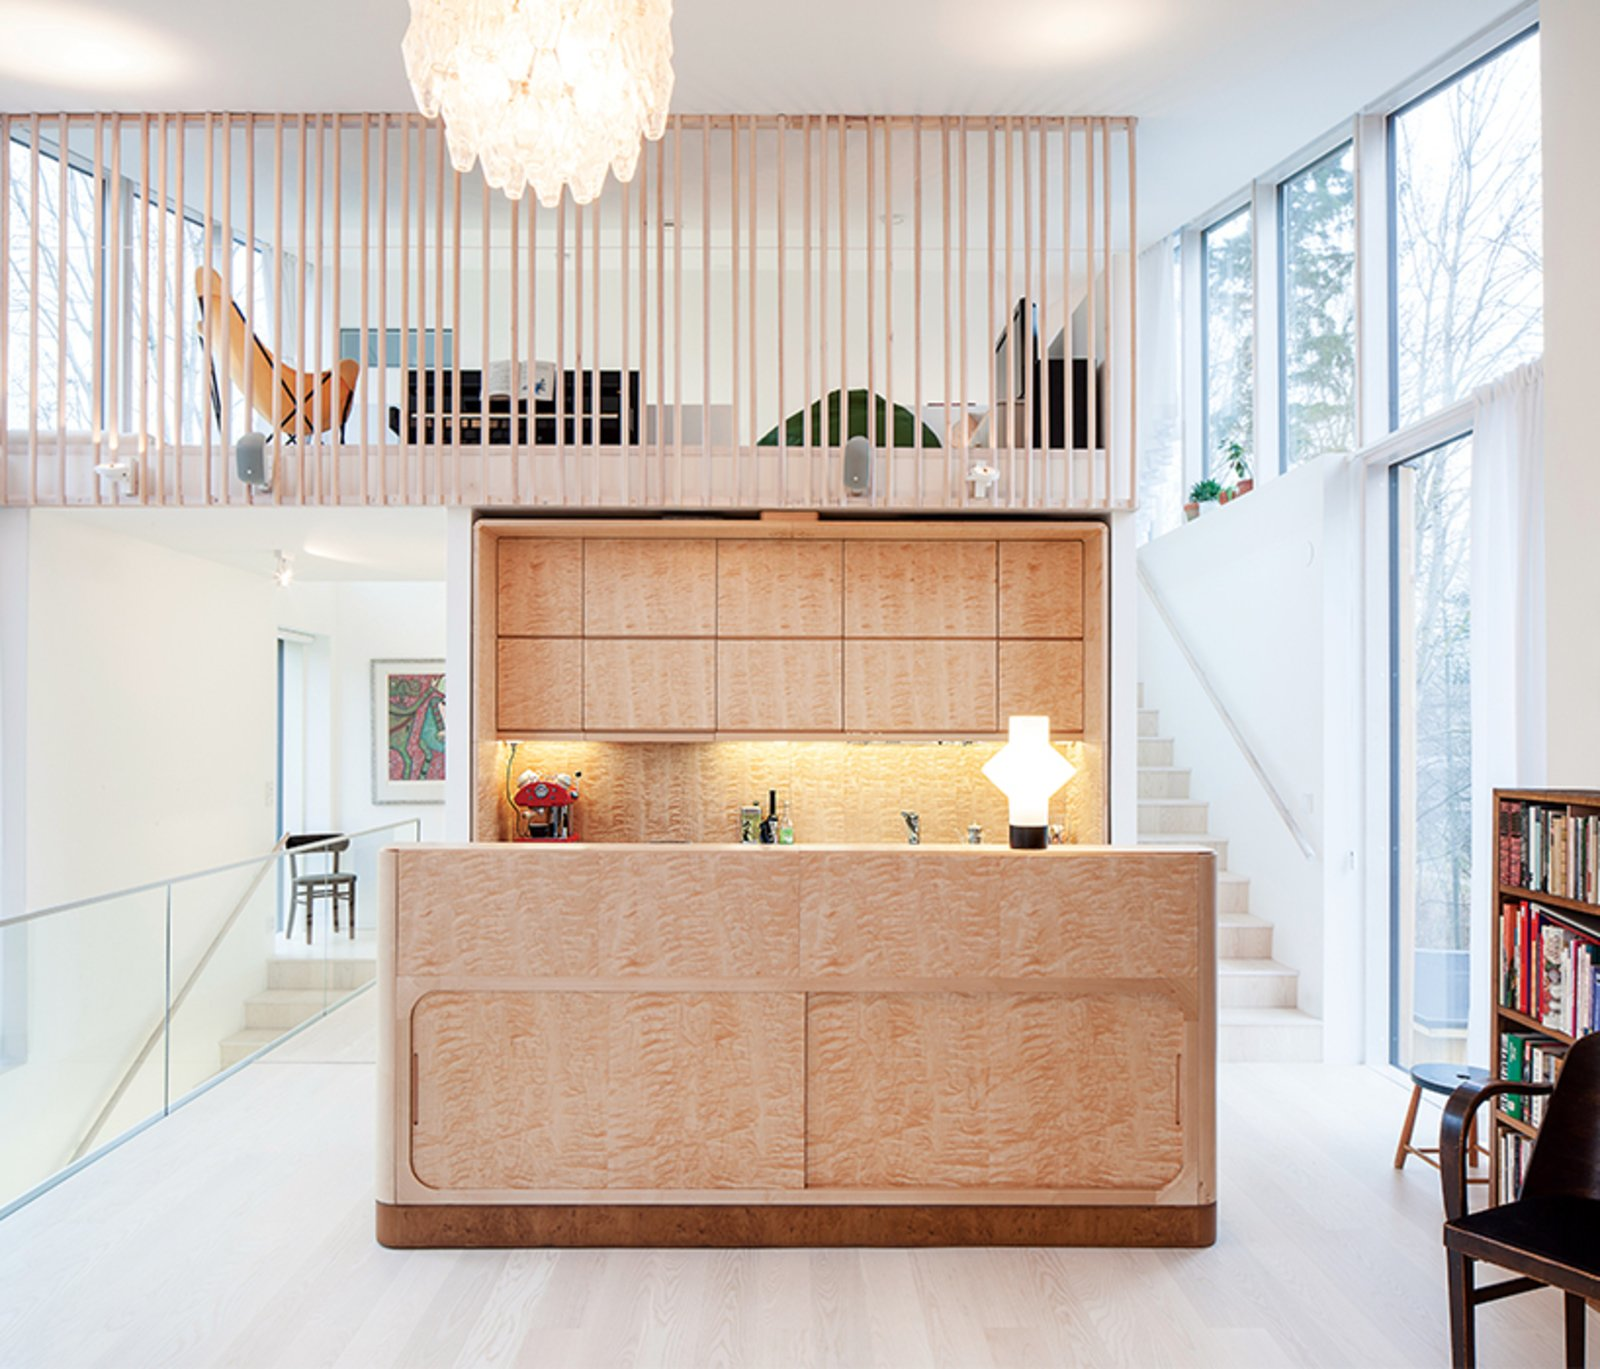 Photo 1 of 12 in This Cozy Finnish Home Would Not Be Complete Without a Sauna